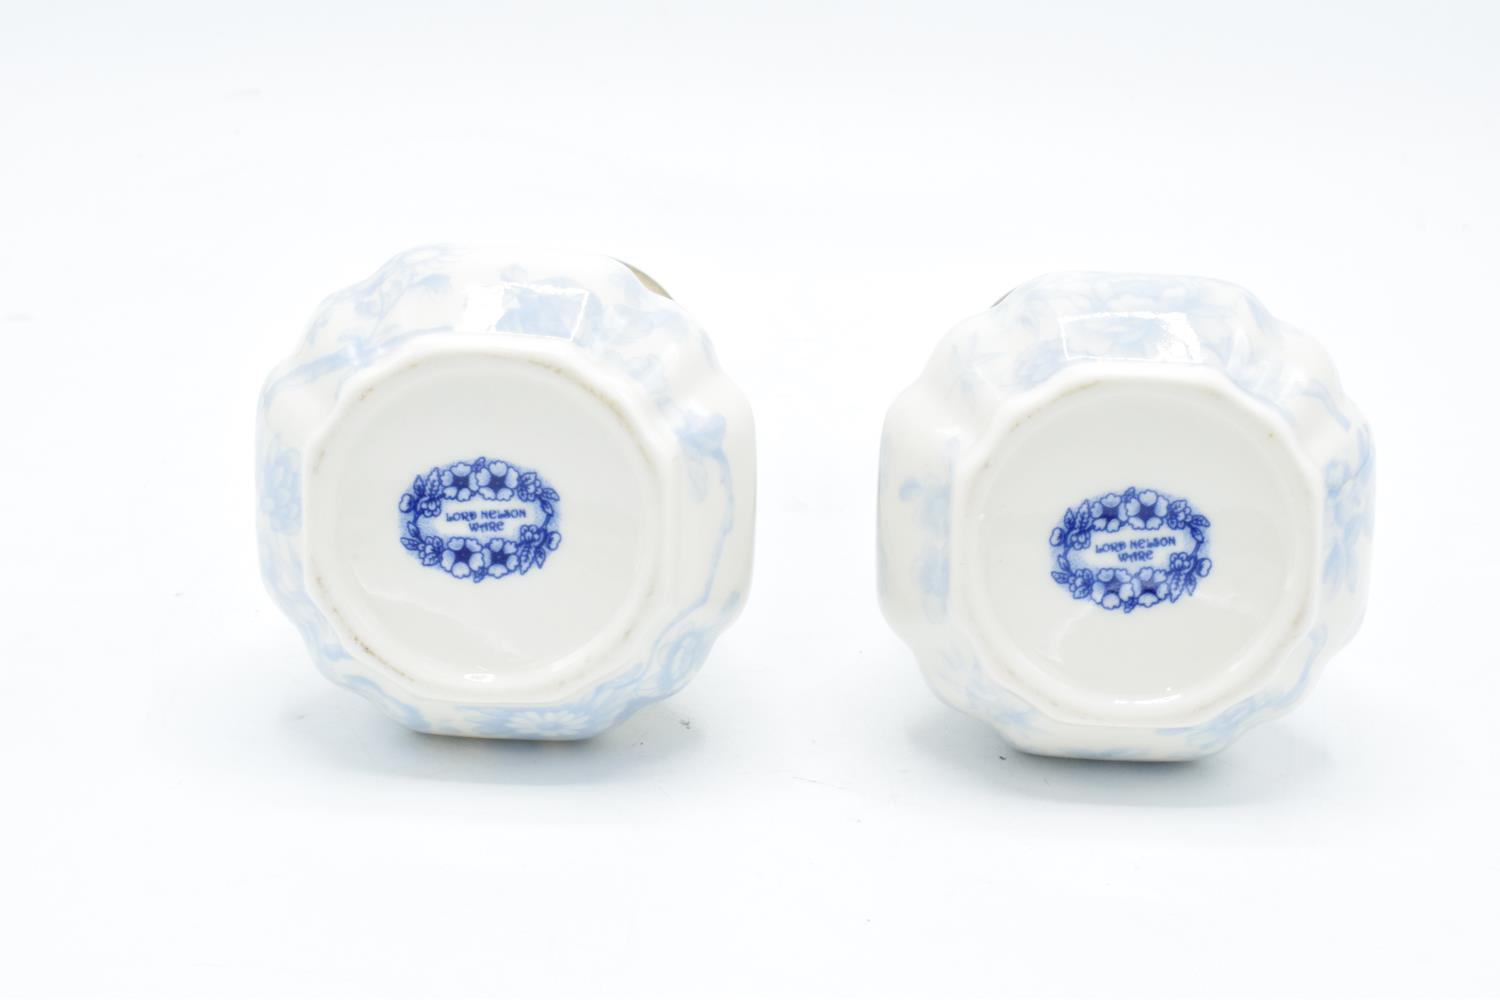 A pair of conical sugar shakers by Lord Nelson Ware in a blue chintz design (2). In good condition - Image 2 of 2